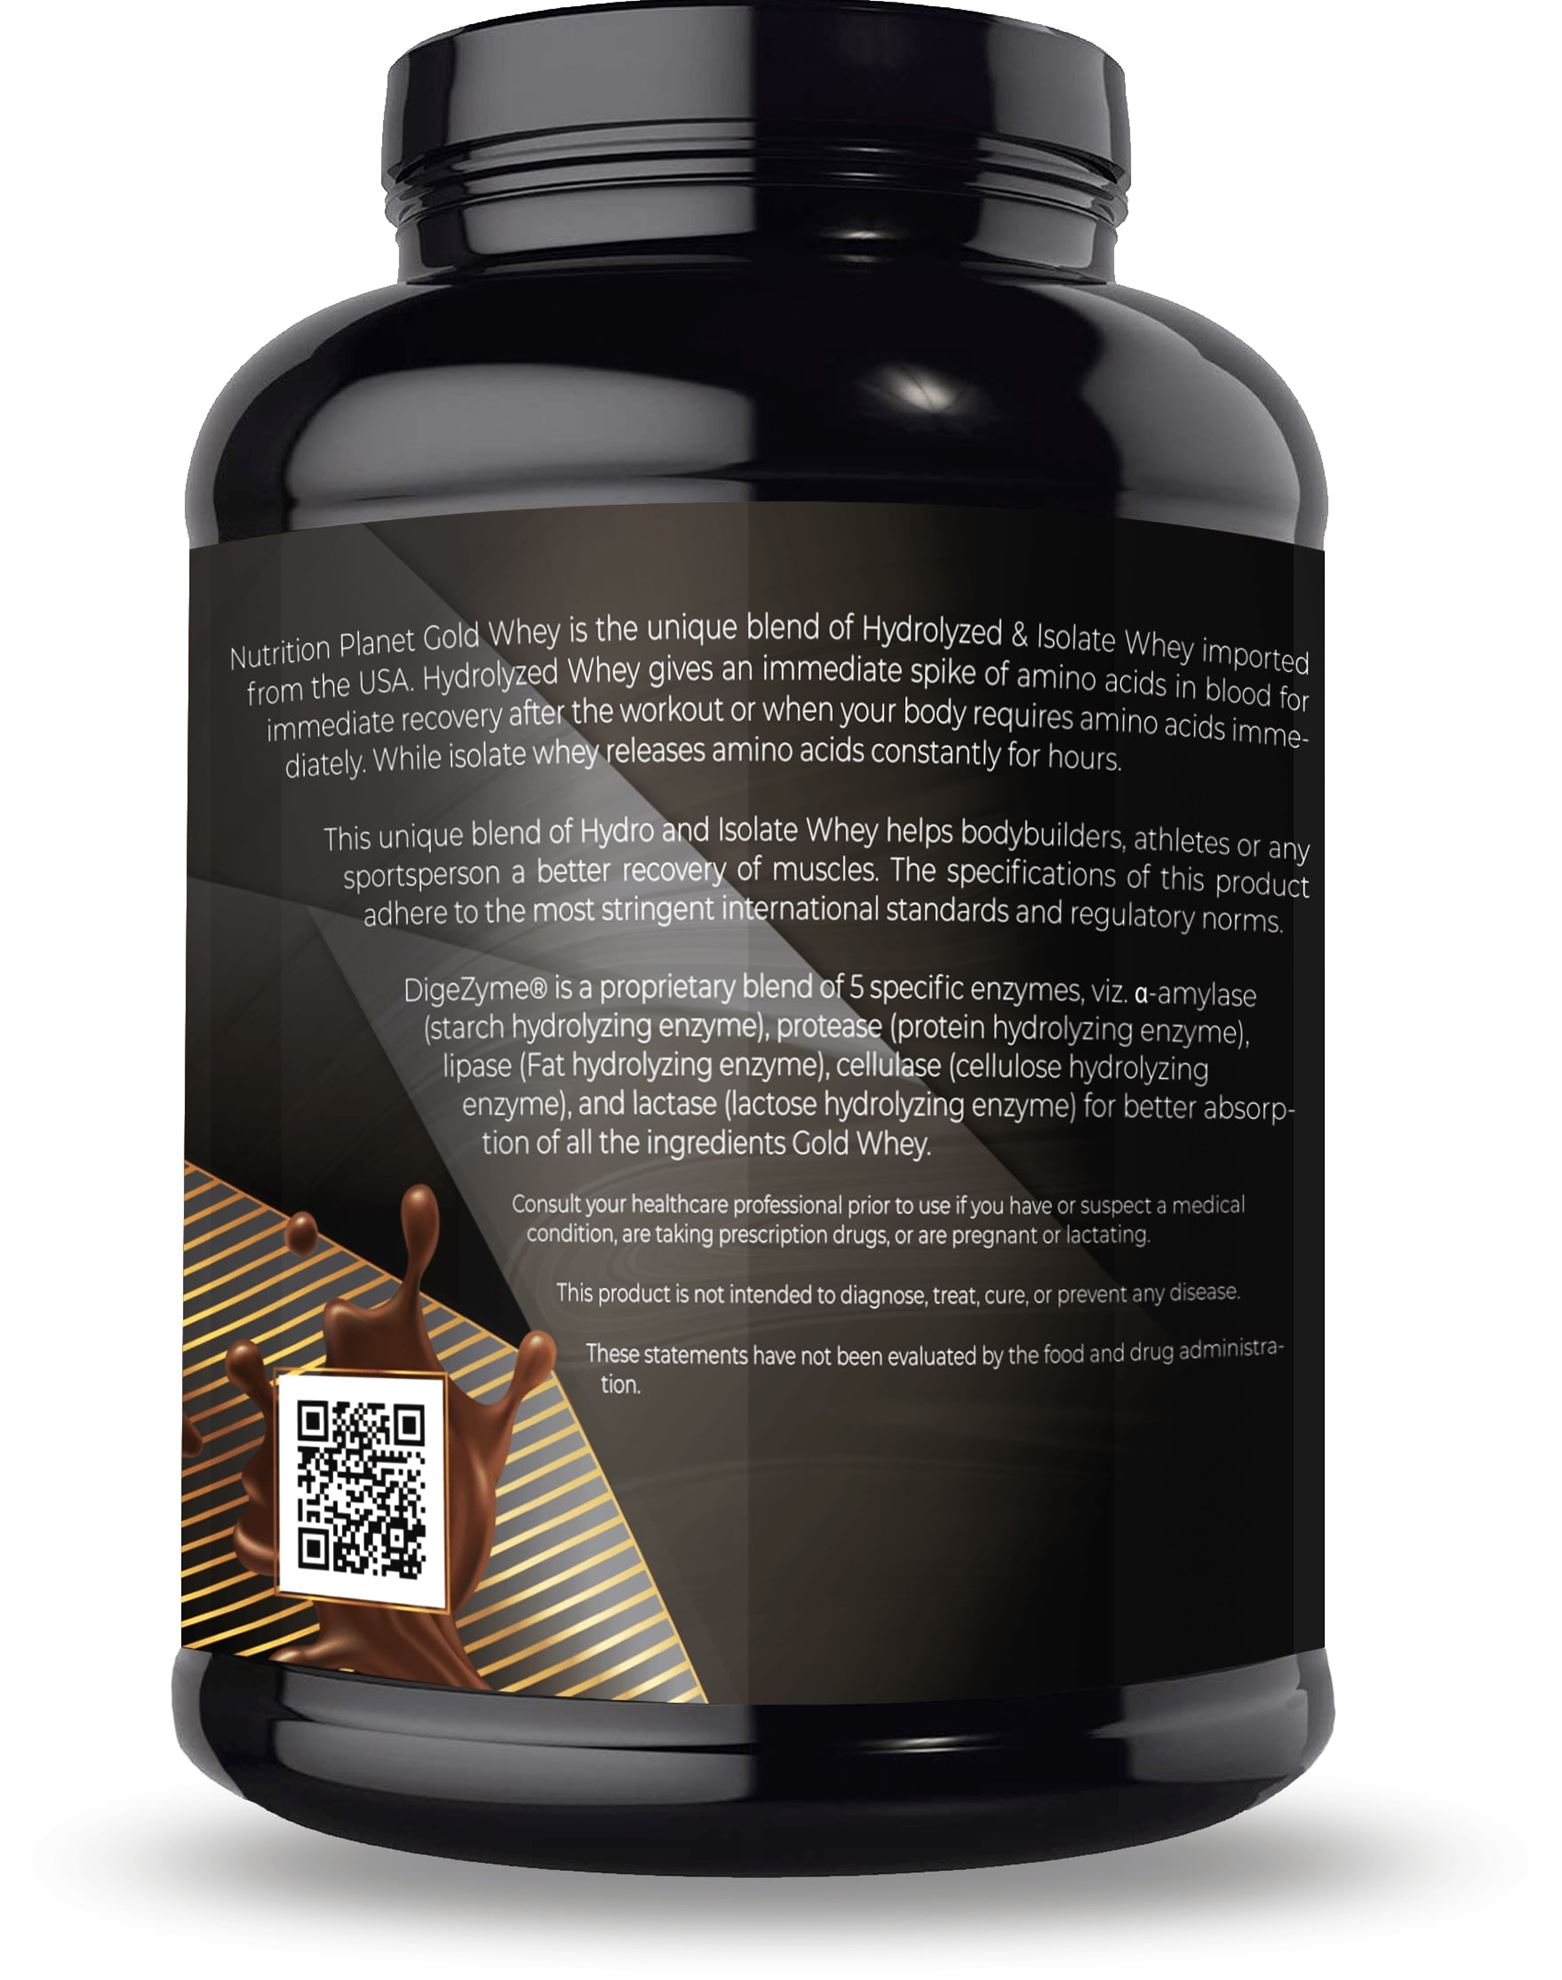 Picture of Nutrition Planet - Gold Whey With Added DigeZyme 4 lbs